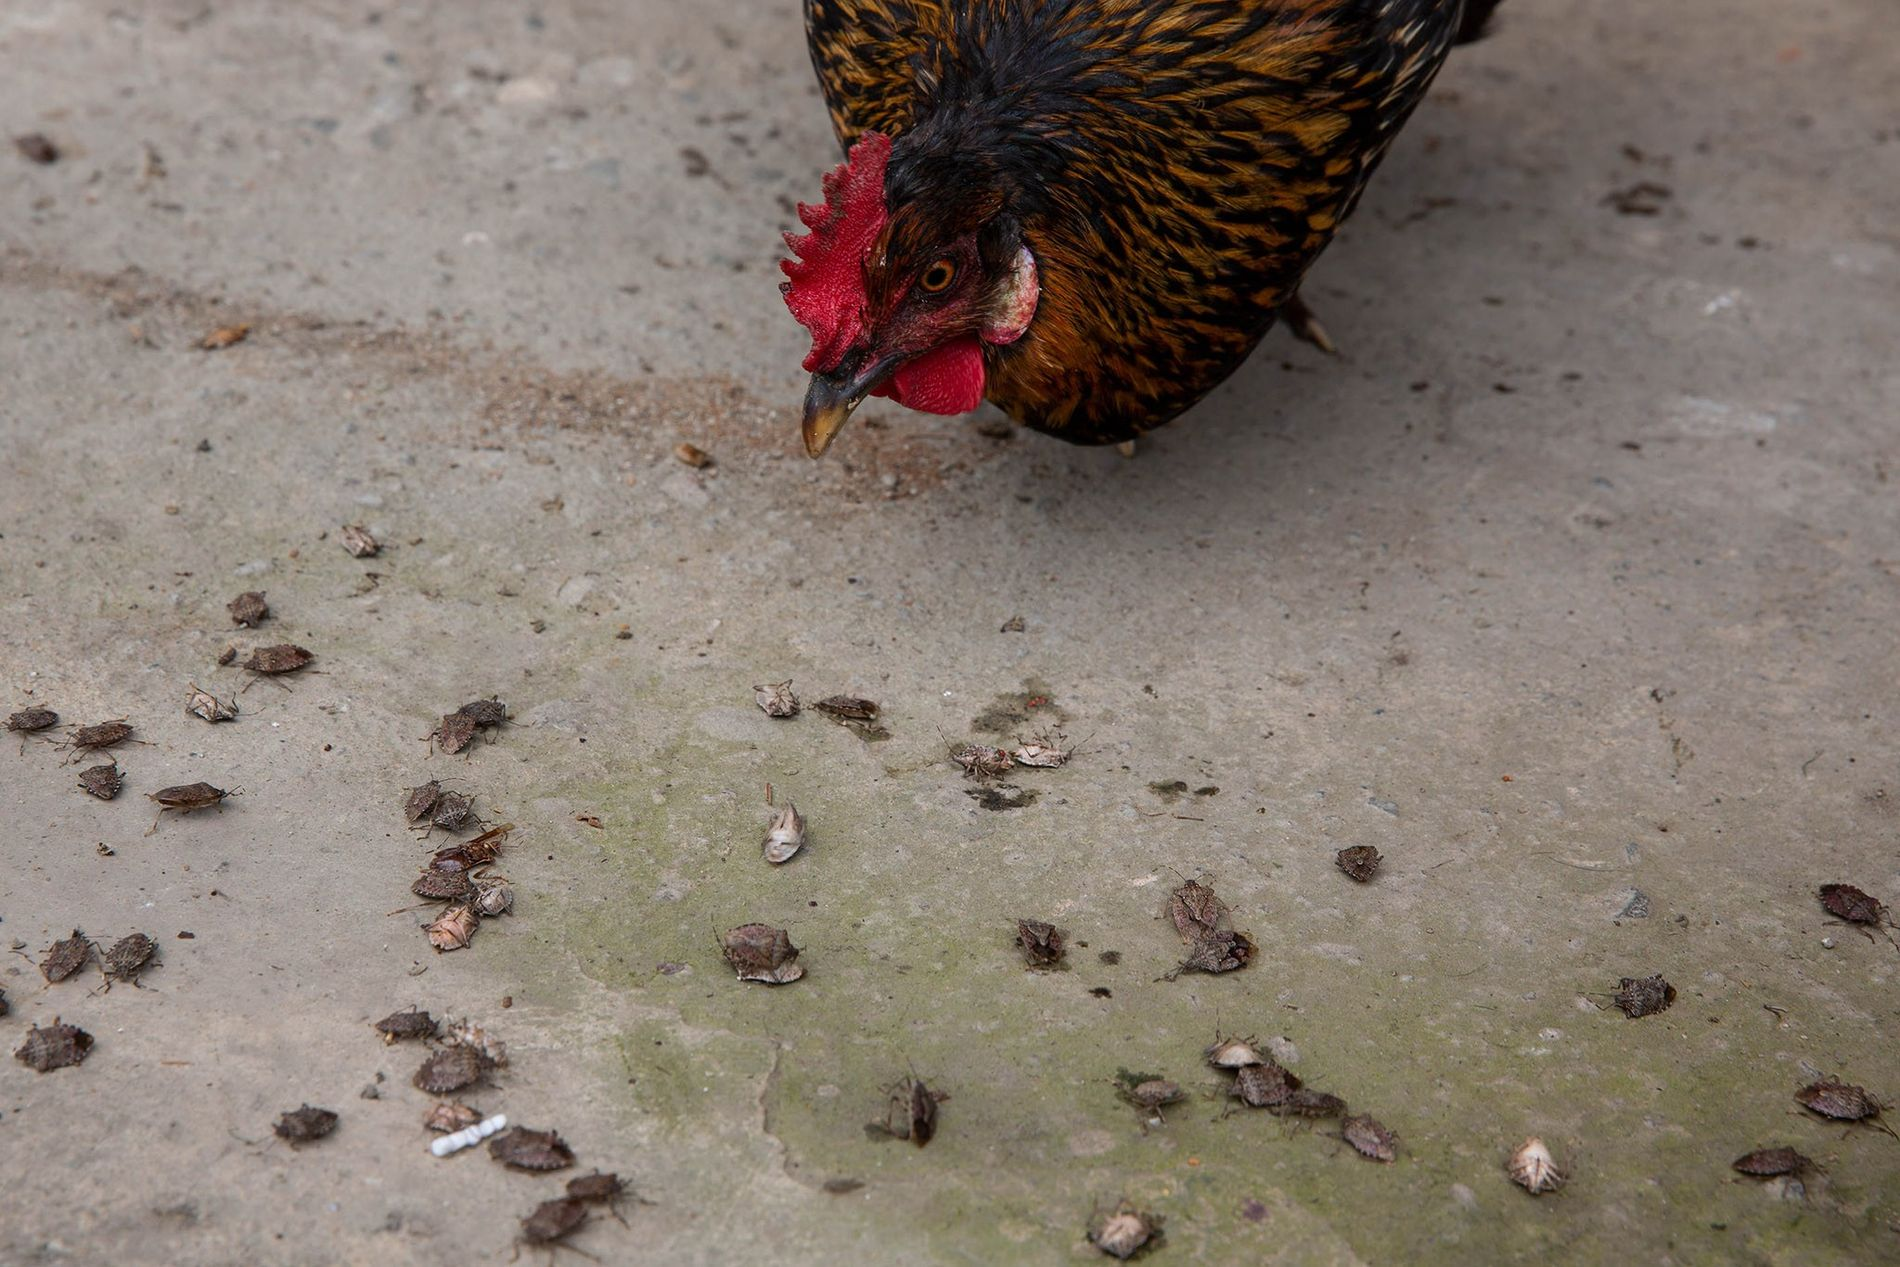 Stink bugs, inactive due to their hibernation-like state during cold weather, are eaten by a chicken ...